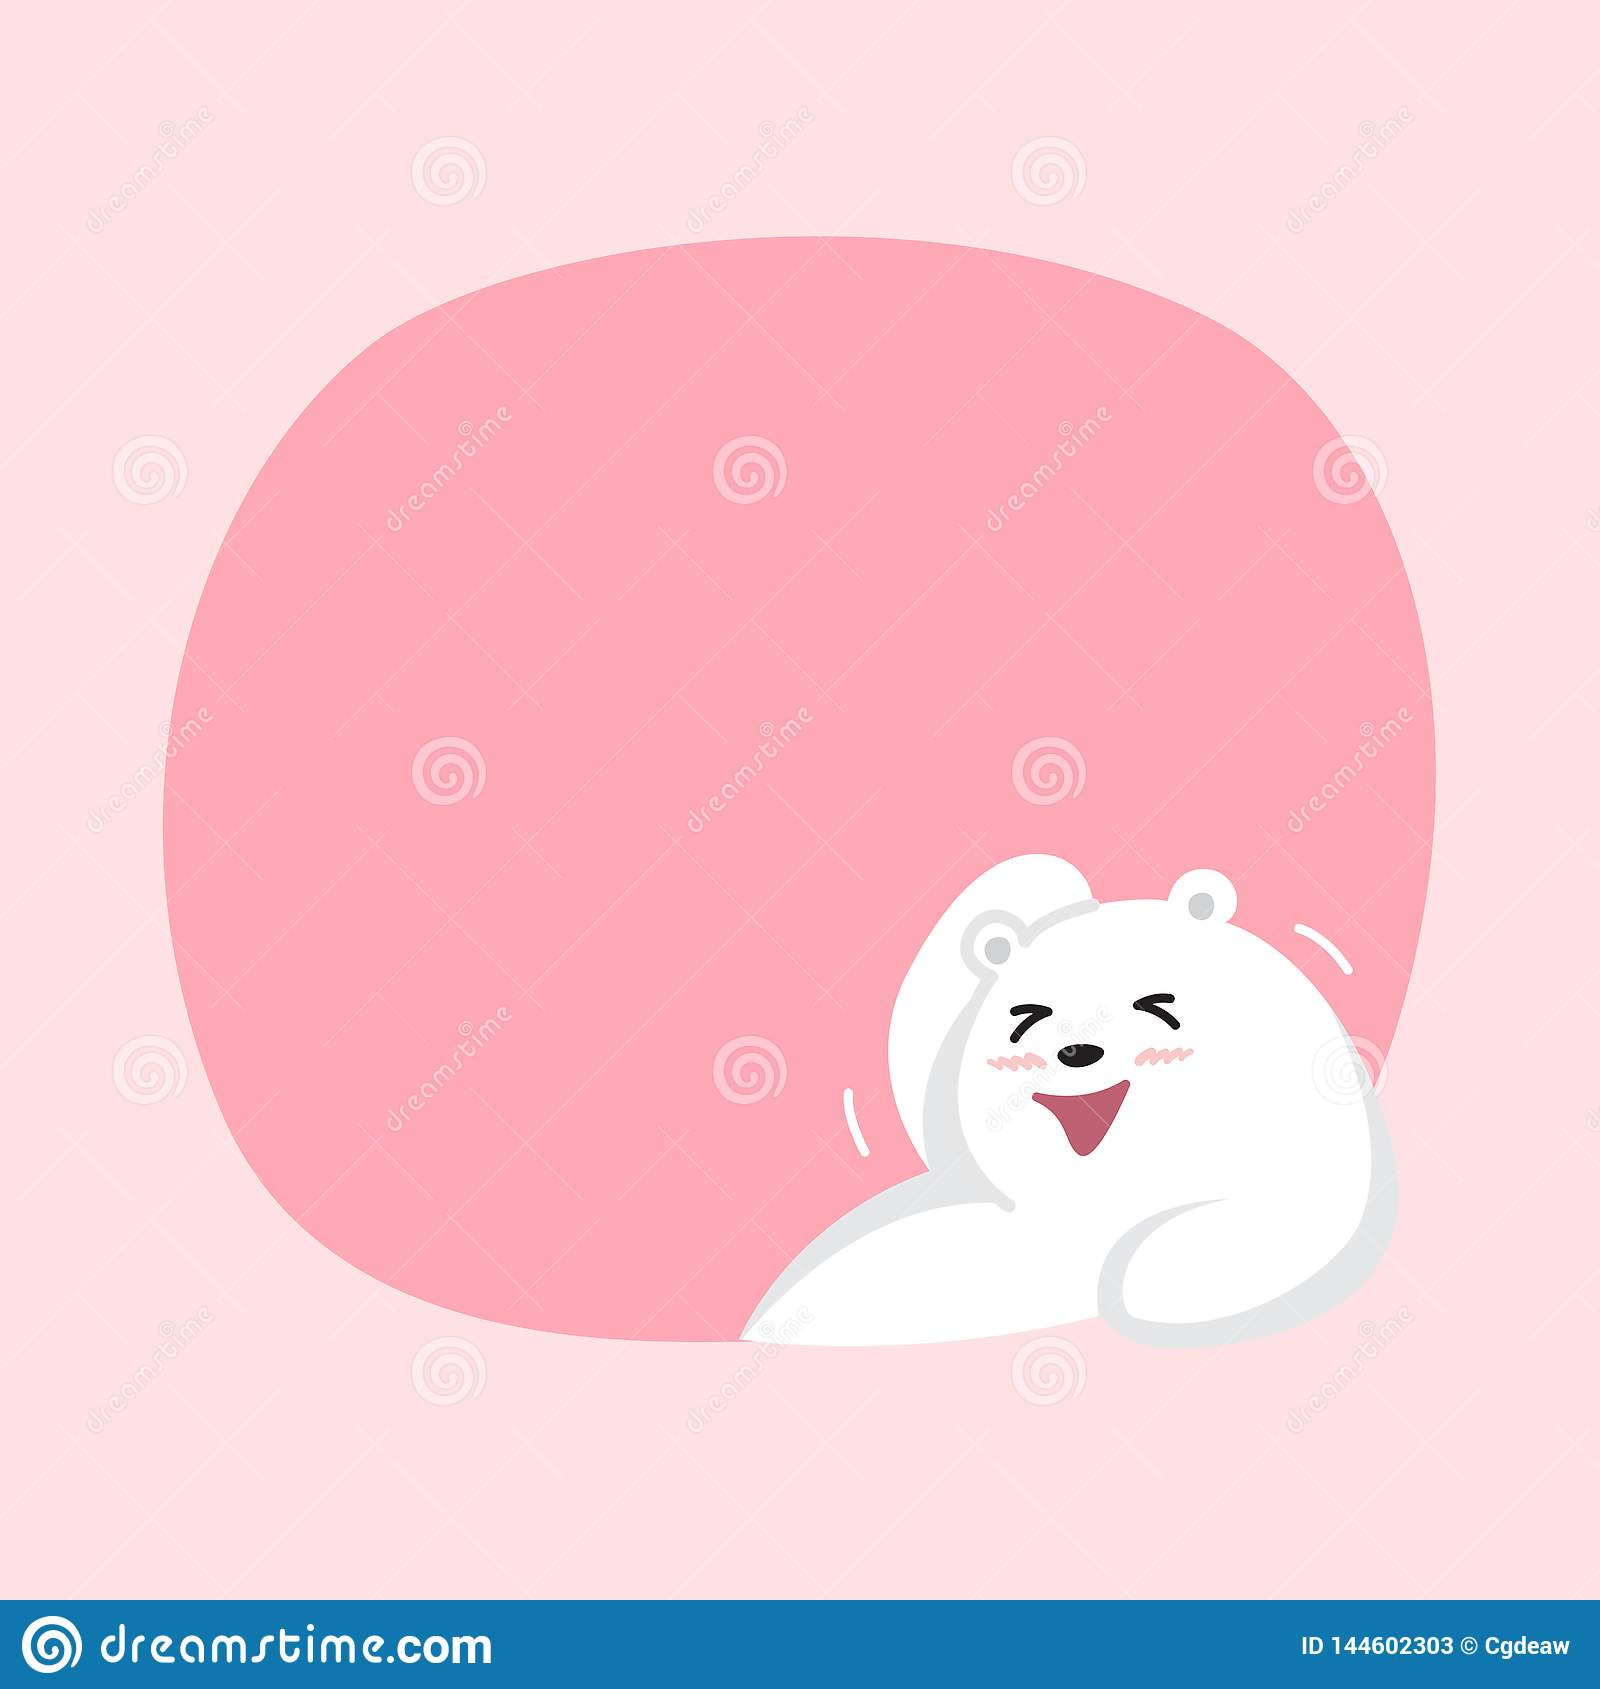 White Bear Cartoon Character Cute On Pink Pastel Color Background For Banner Copy Space Empty White Bear On Speech Bubble Stock Vector Illustration Of Happy Cartoons 144602303